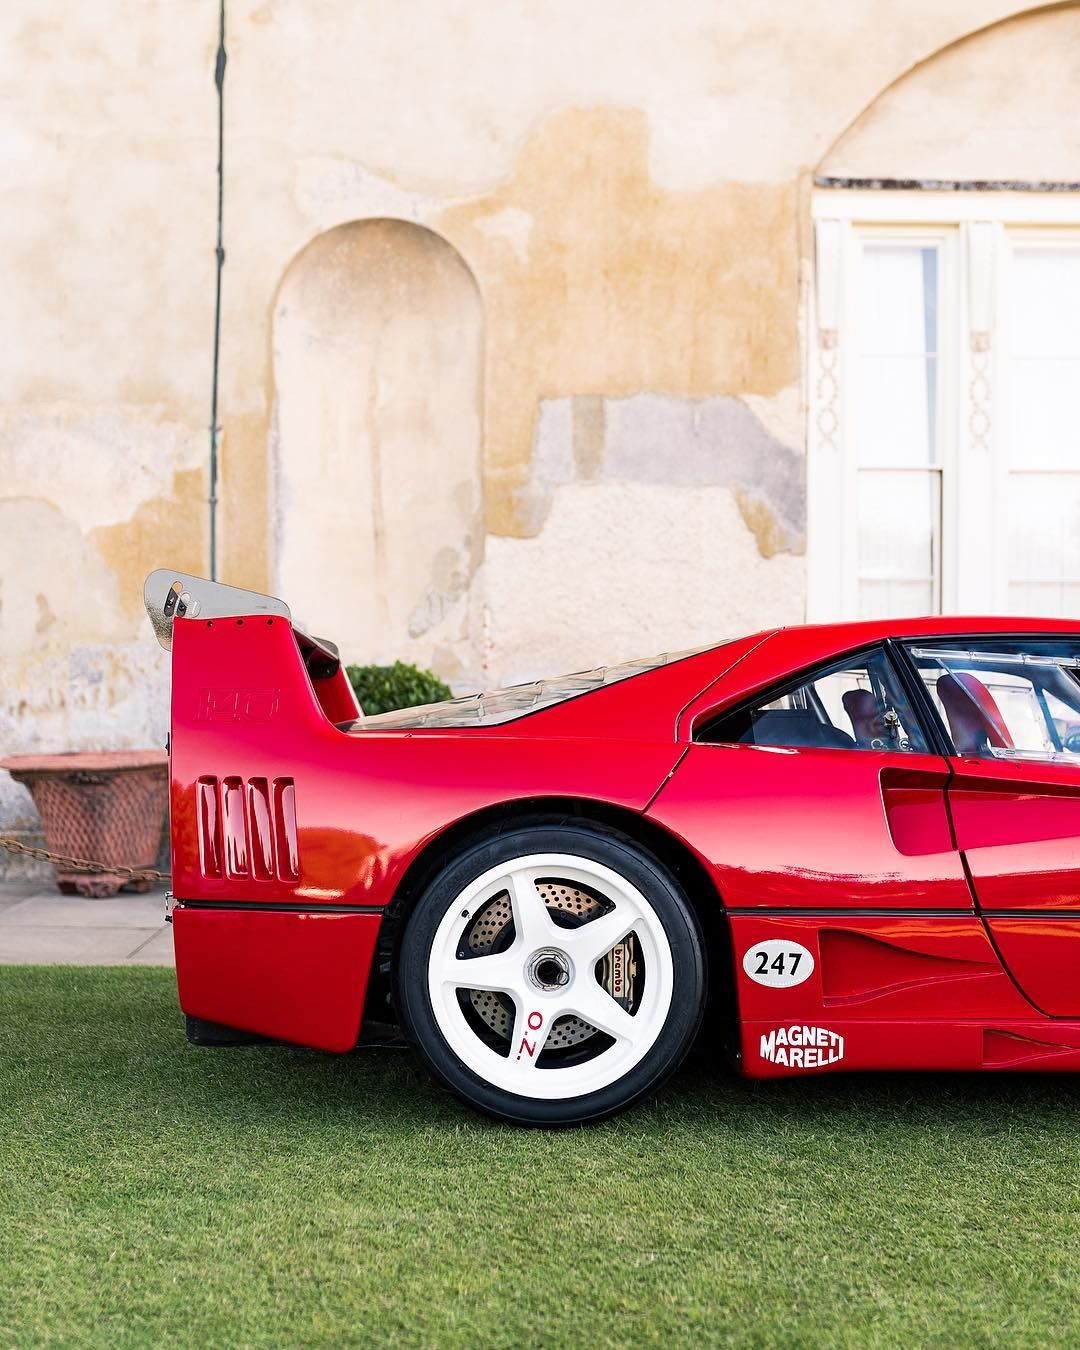 An F40 LM on white OZ wheels. muchwant ferrari f40 lm